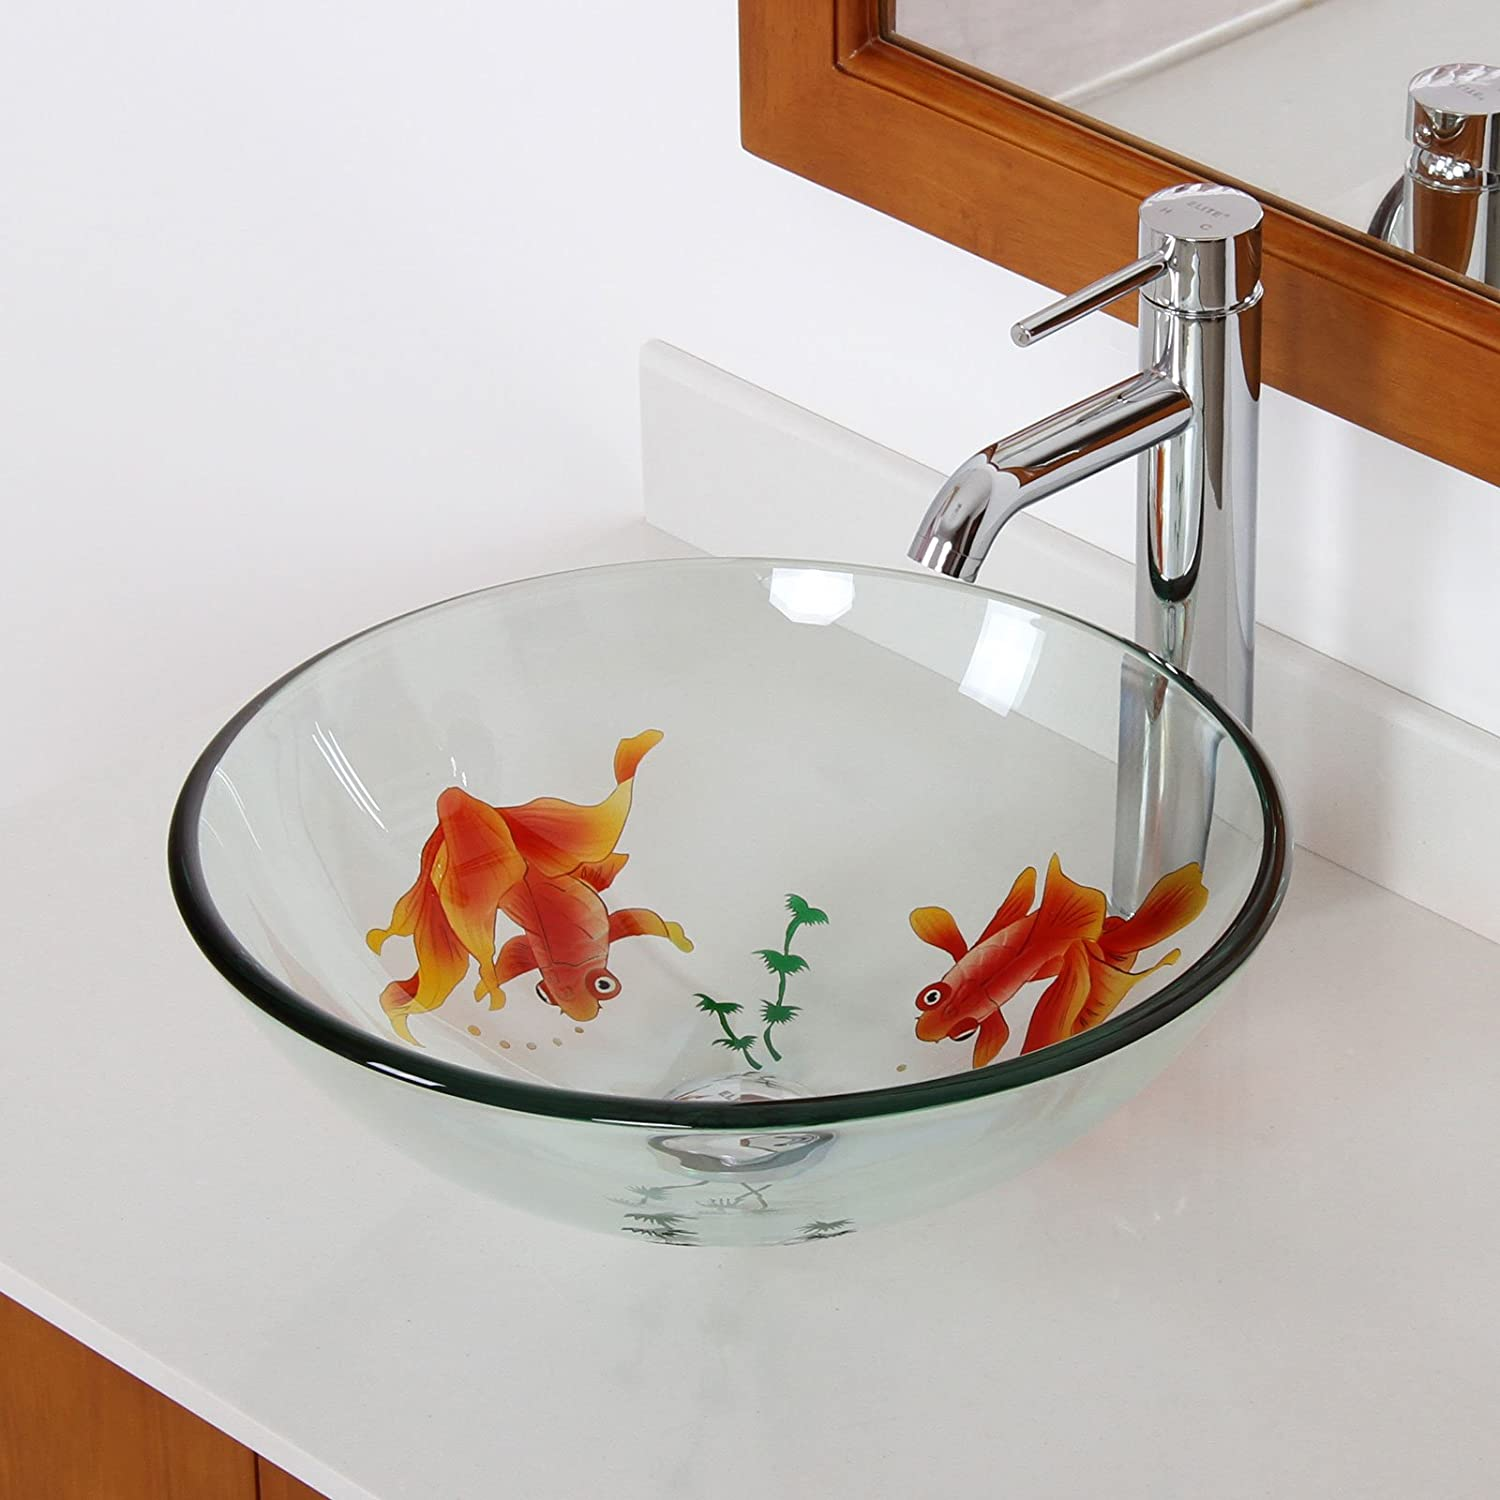 ELITE Bathroom Koi Fish Glass Vessel Sink Chrome Faucet Combo Vanity